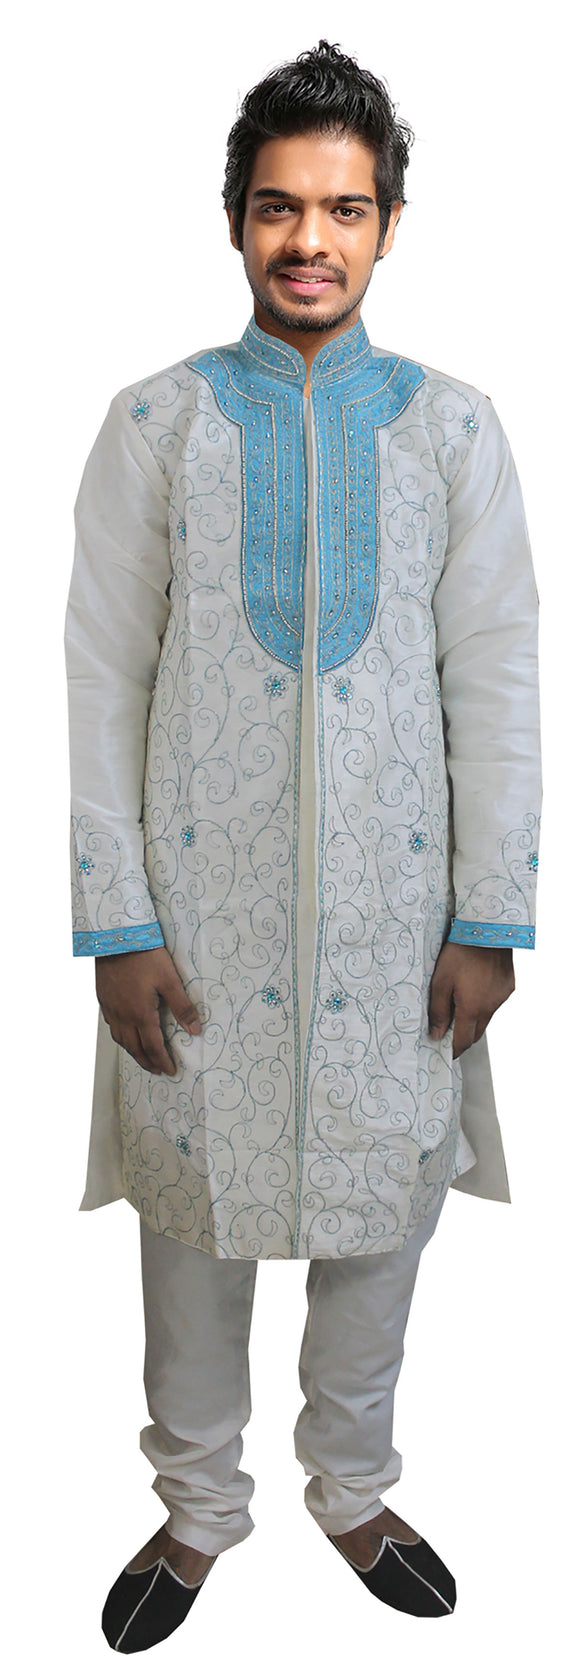 Apparelsonline White Men Sherwani Party Wedding Wear